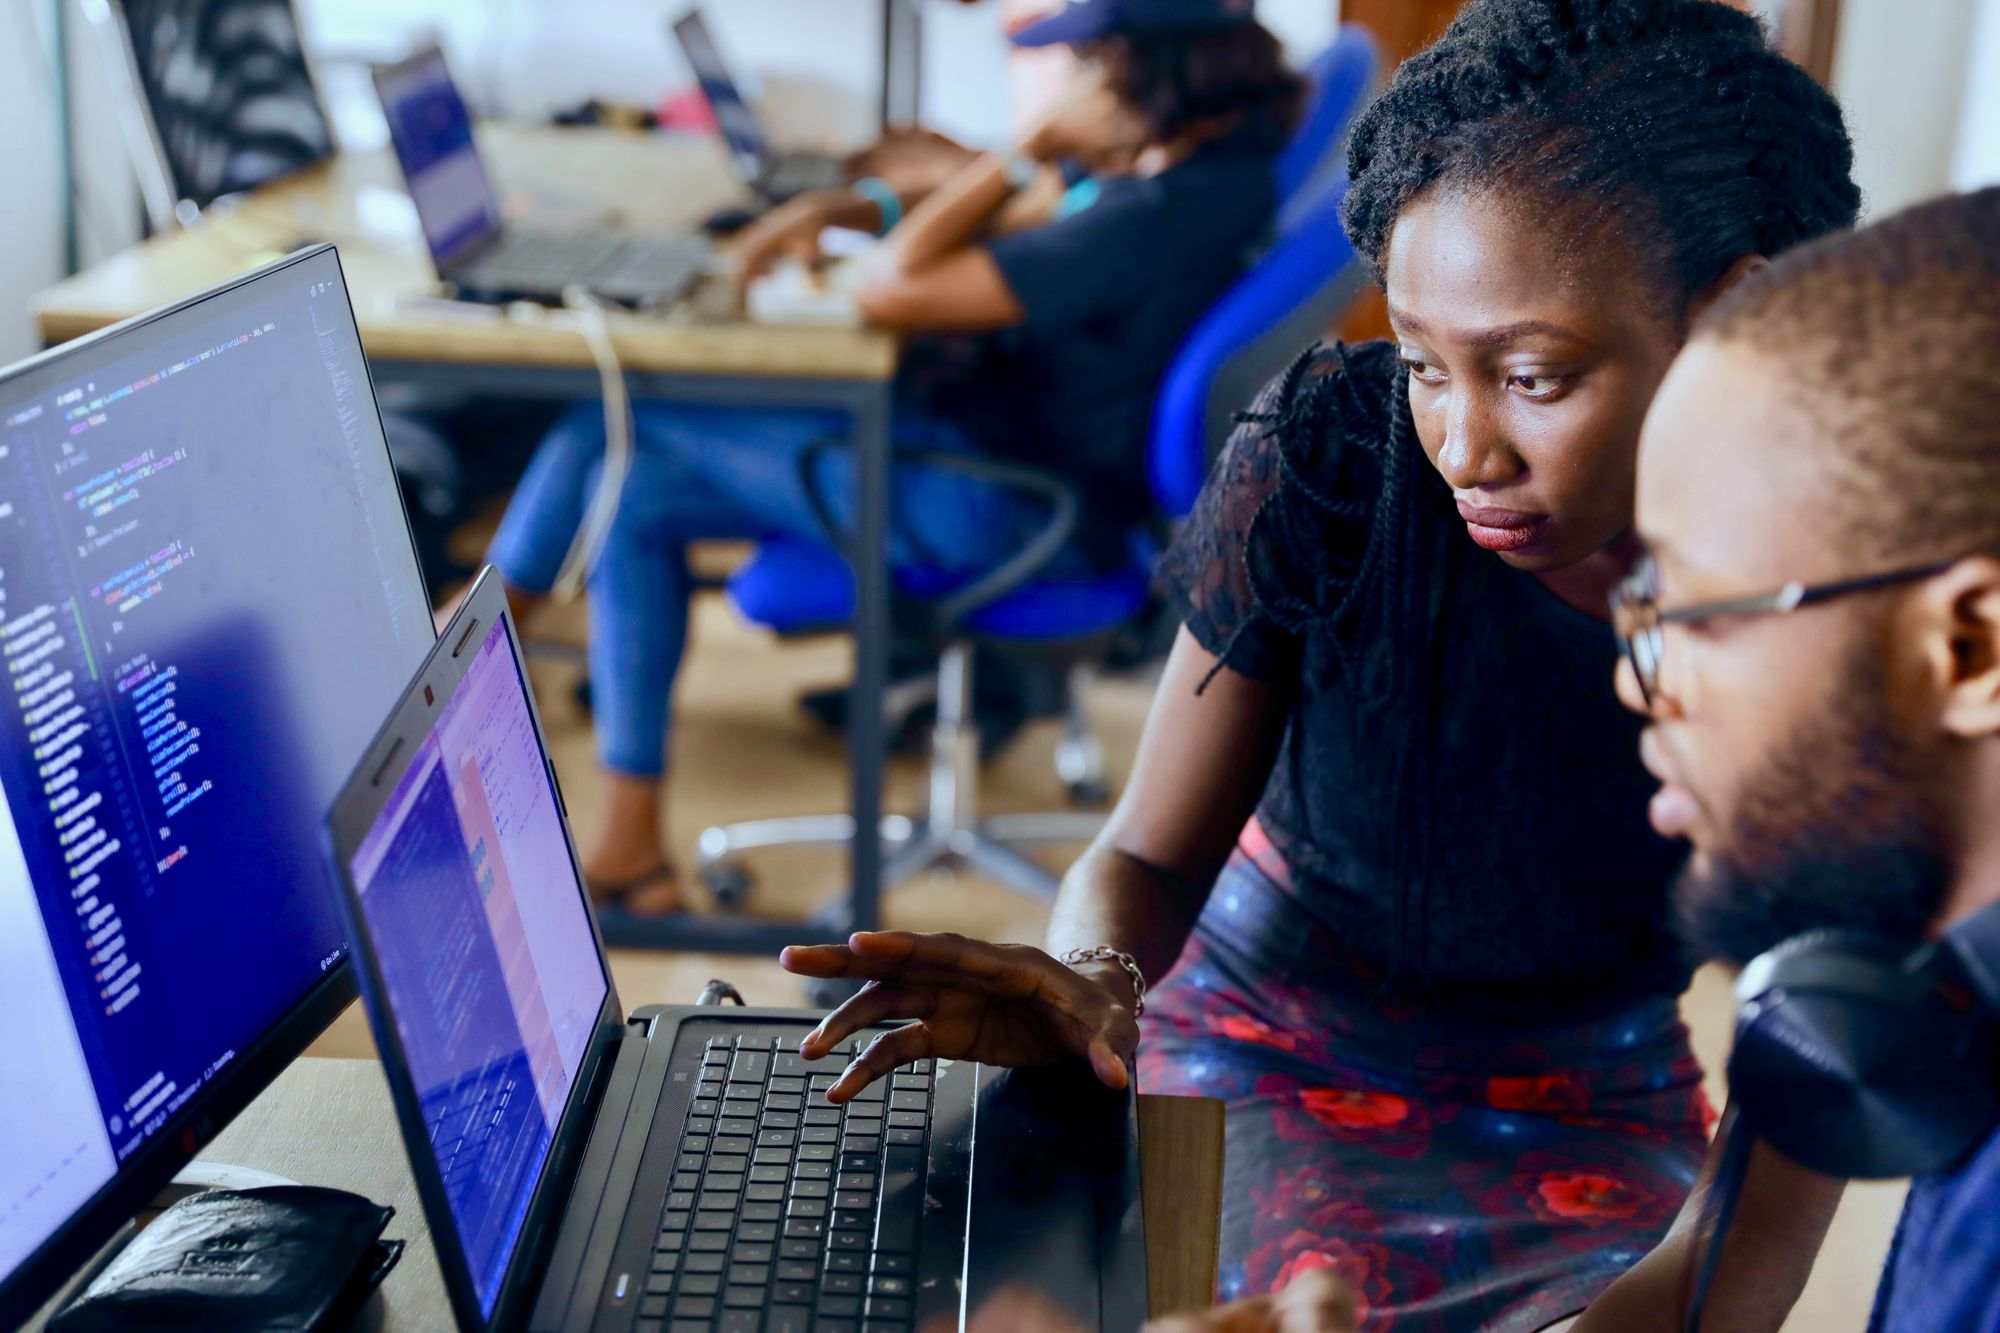 Africa's VC Boom: An Enabling Present or a Bet On The Future?